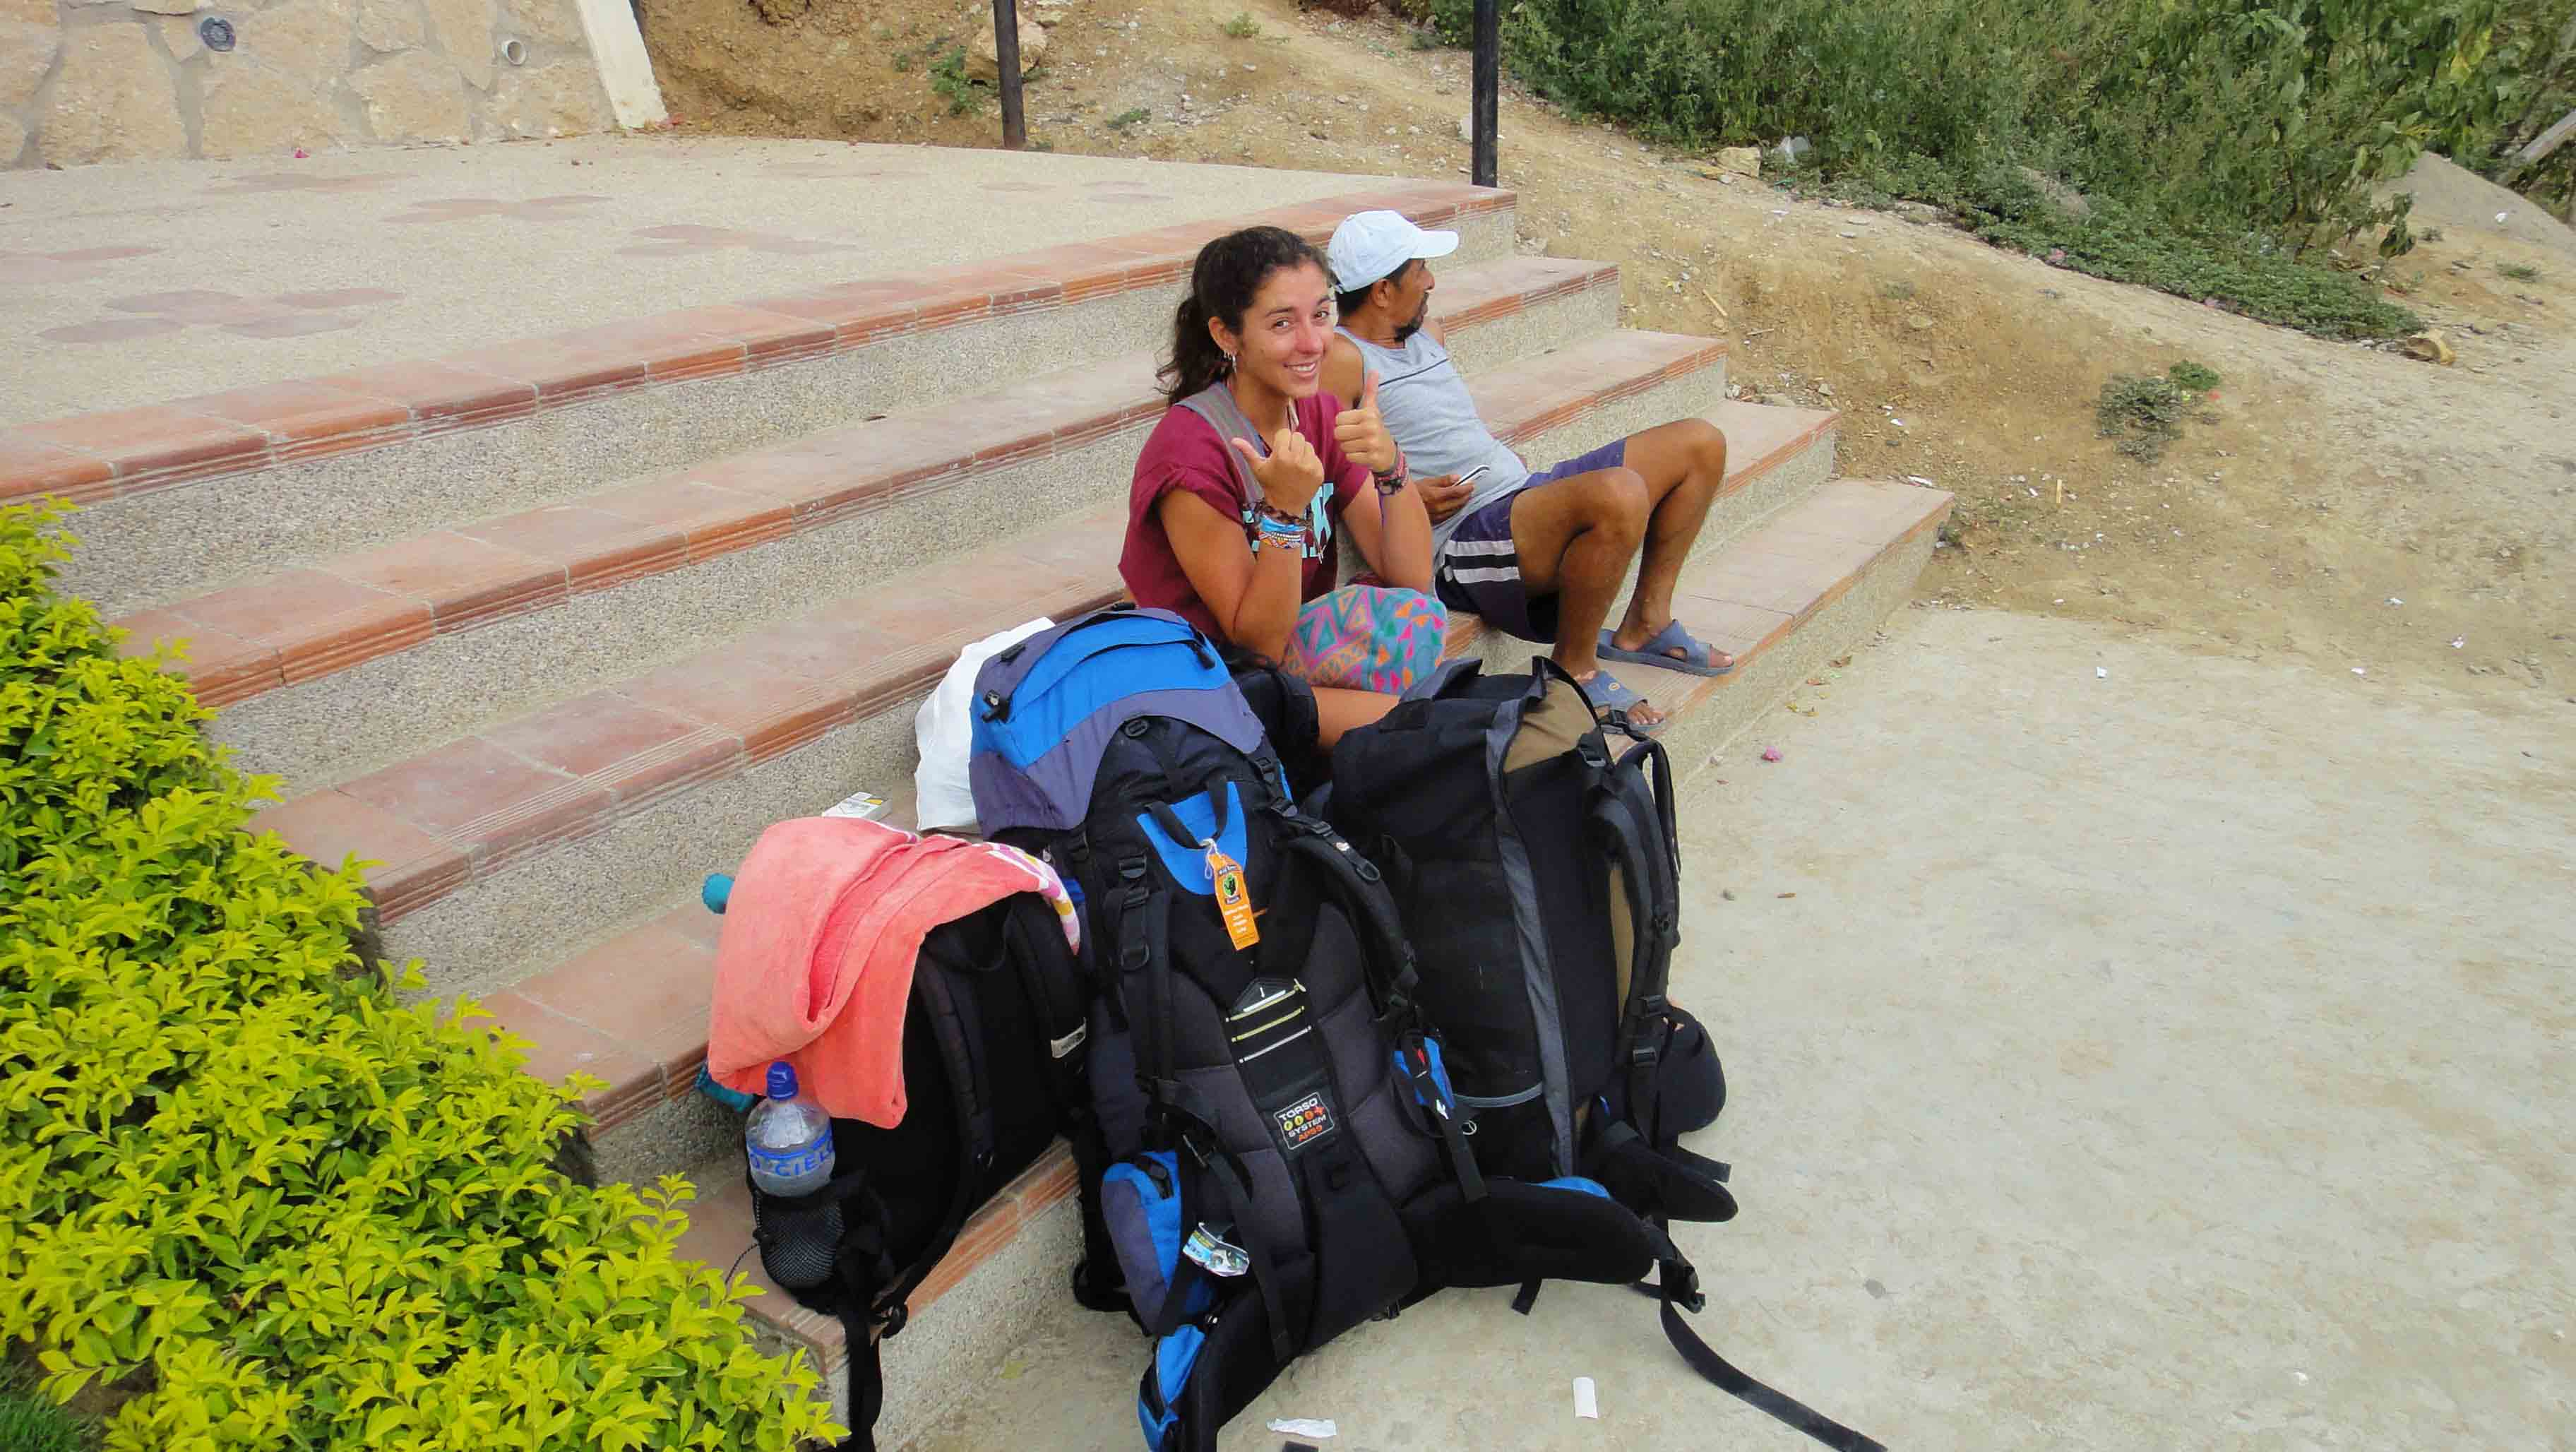 Backpacker waiting on bus